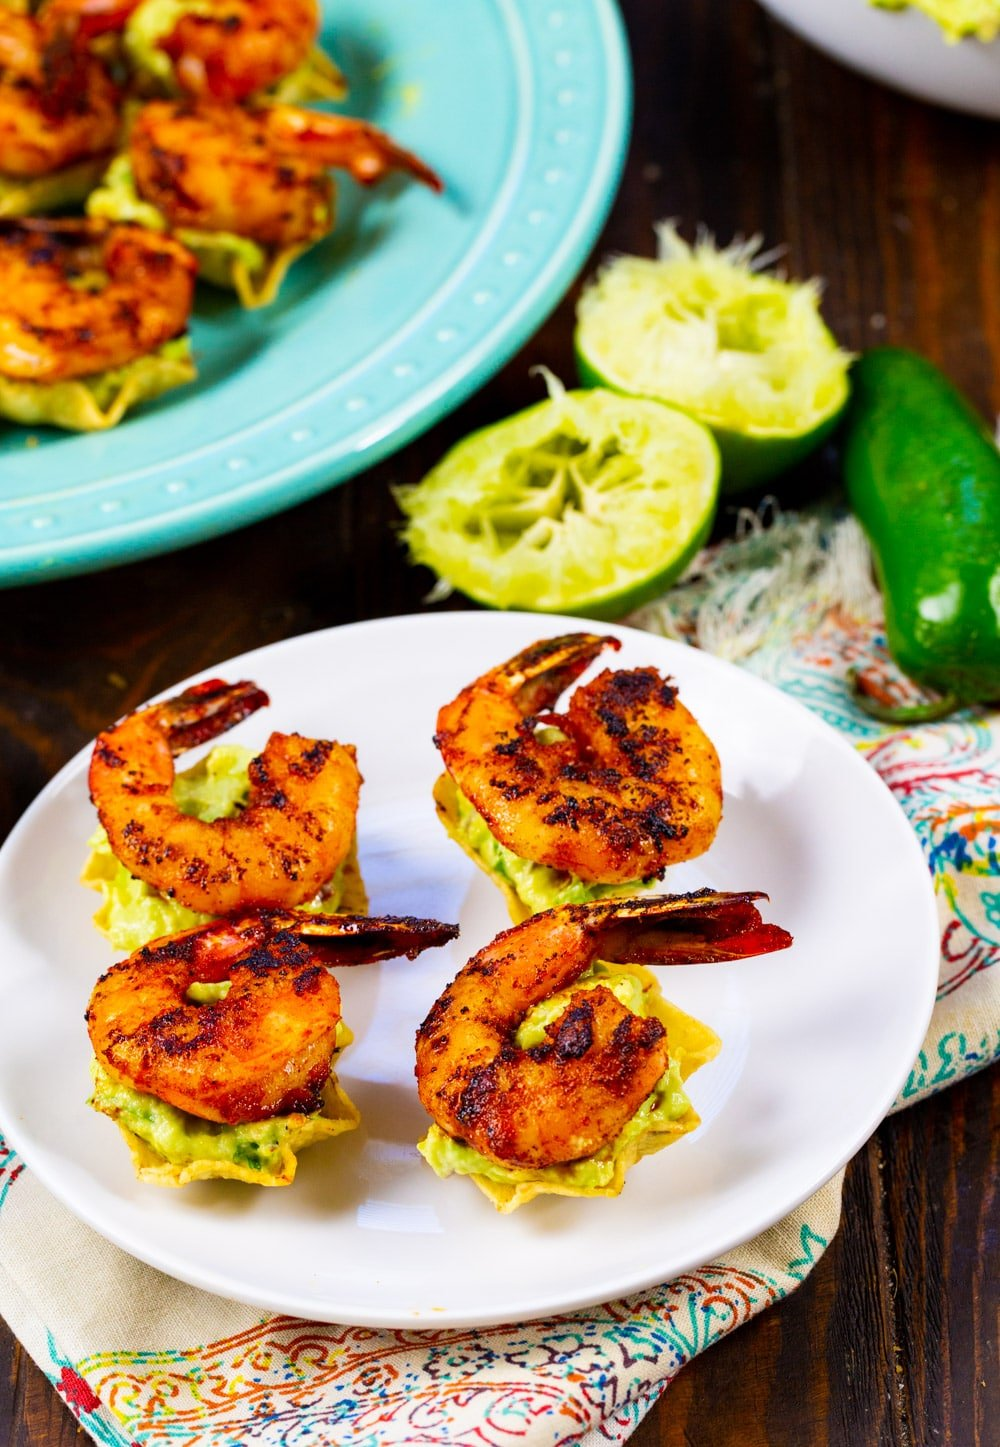 Tostada Bites topped with shrimp on a plate with lime halves.